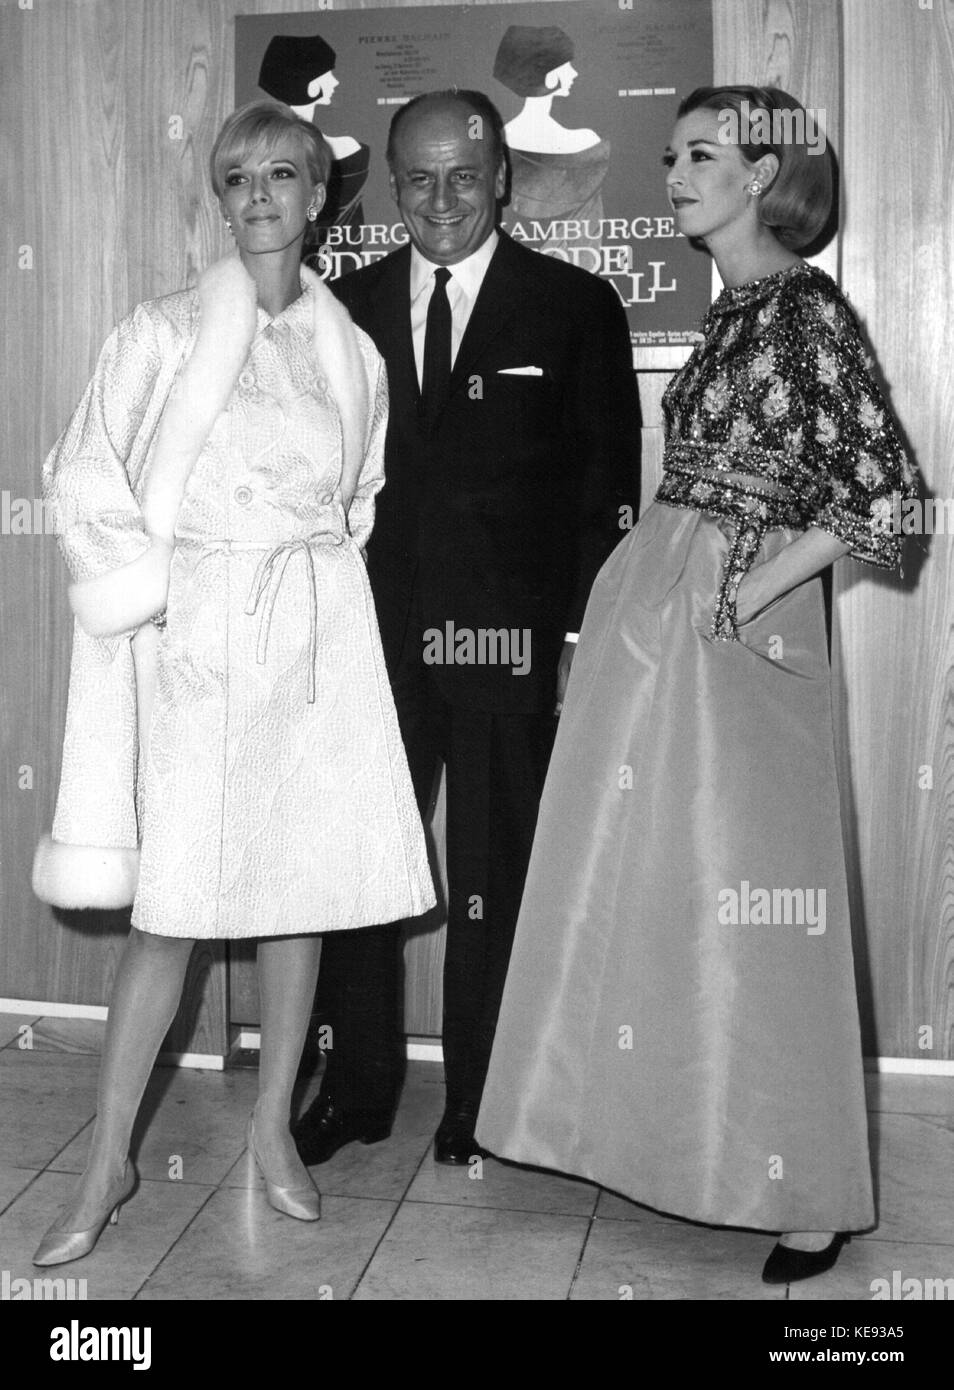 584a0c03 French fashion designer Pierre Balmain with two models at the fashion ball  in Hamburg (Germany